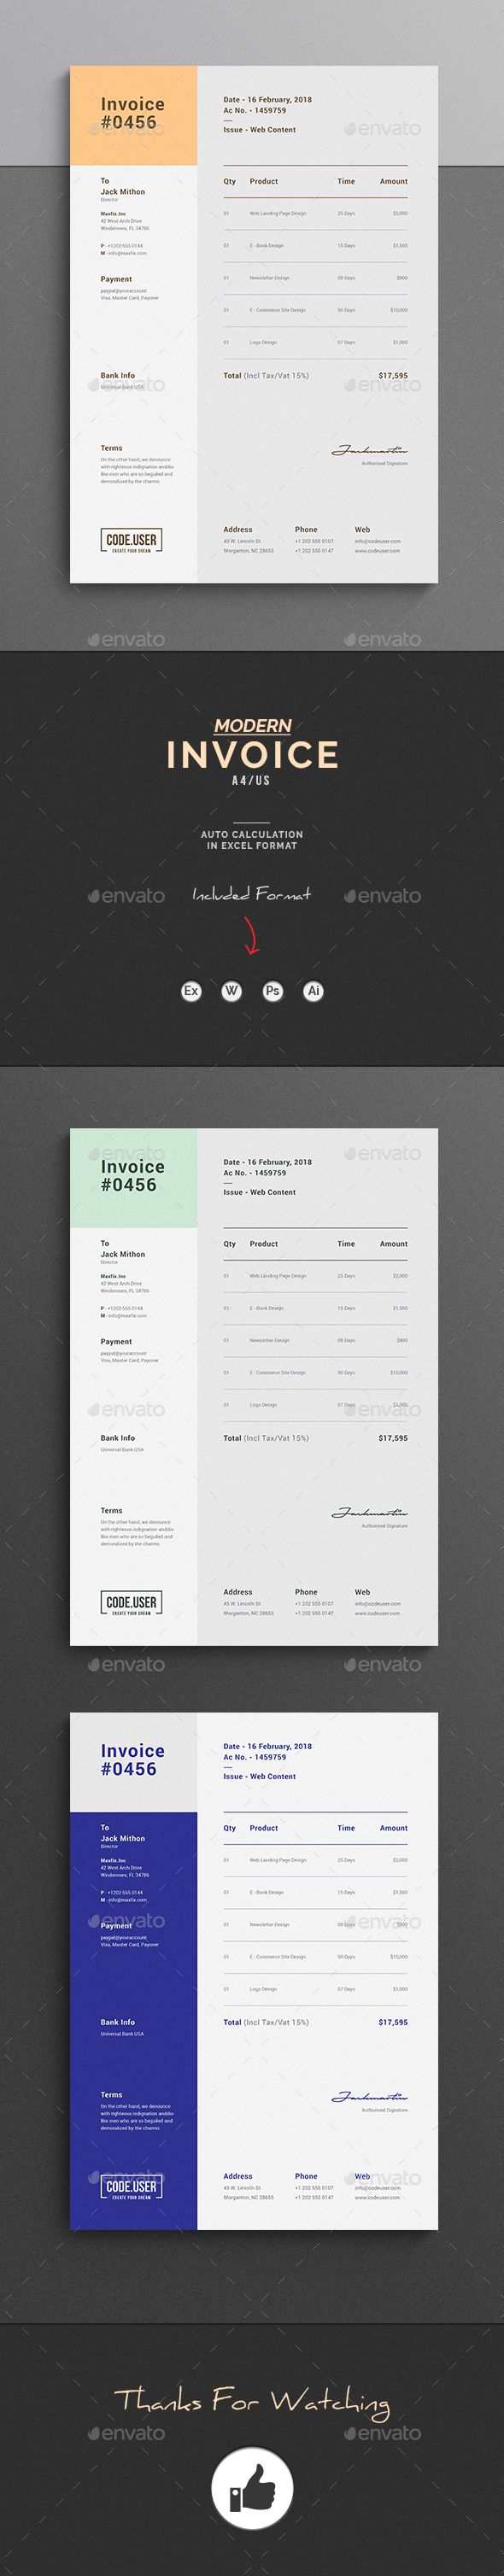 Invoice by upra Invoice Excel Template. Use this Invoice for personal, corporate or company billing purpose. This Simple Invoice will help you to